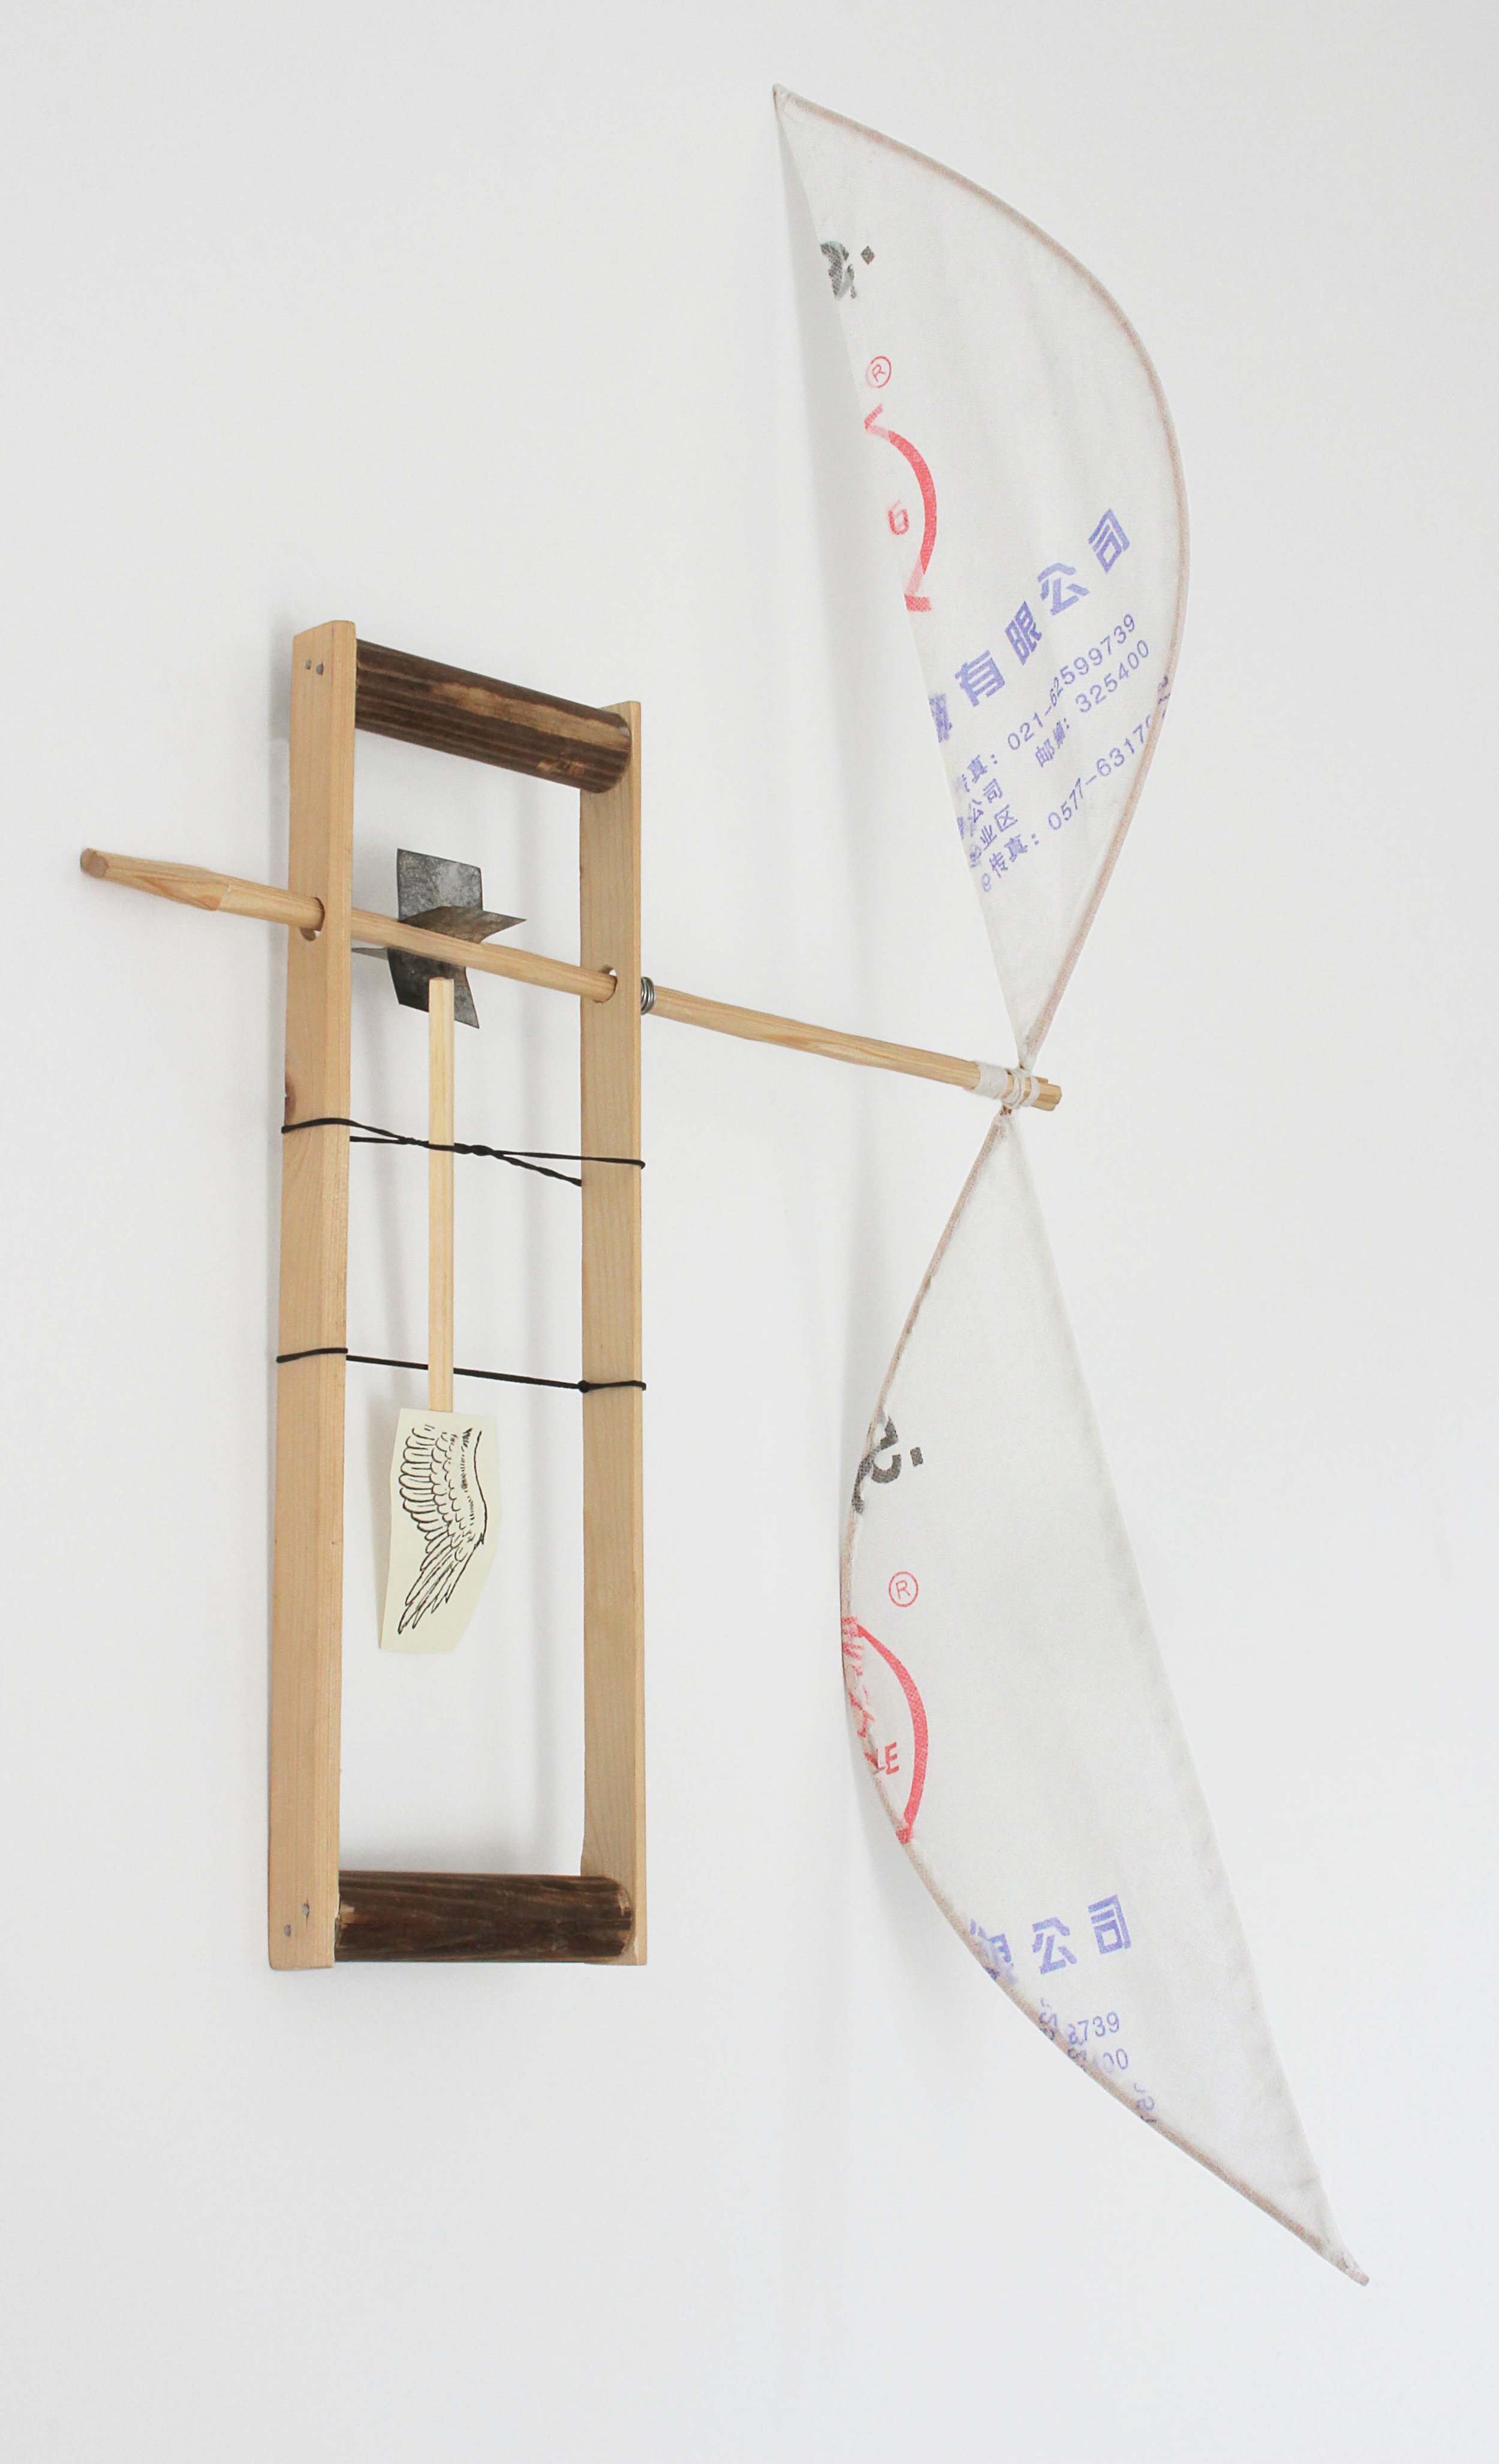 - Pinjekan 1, Supported using public funding by Arts Council England, Wood, cotton, steel & Japanese Shoji paperPowered by the momentum of the viewer walking110cm x 39.5cm x 13cm2015 - ongoing